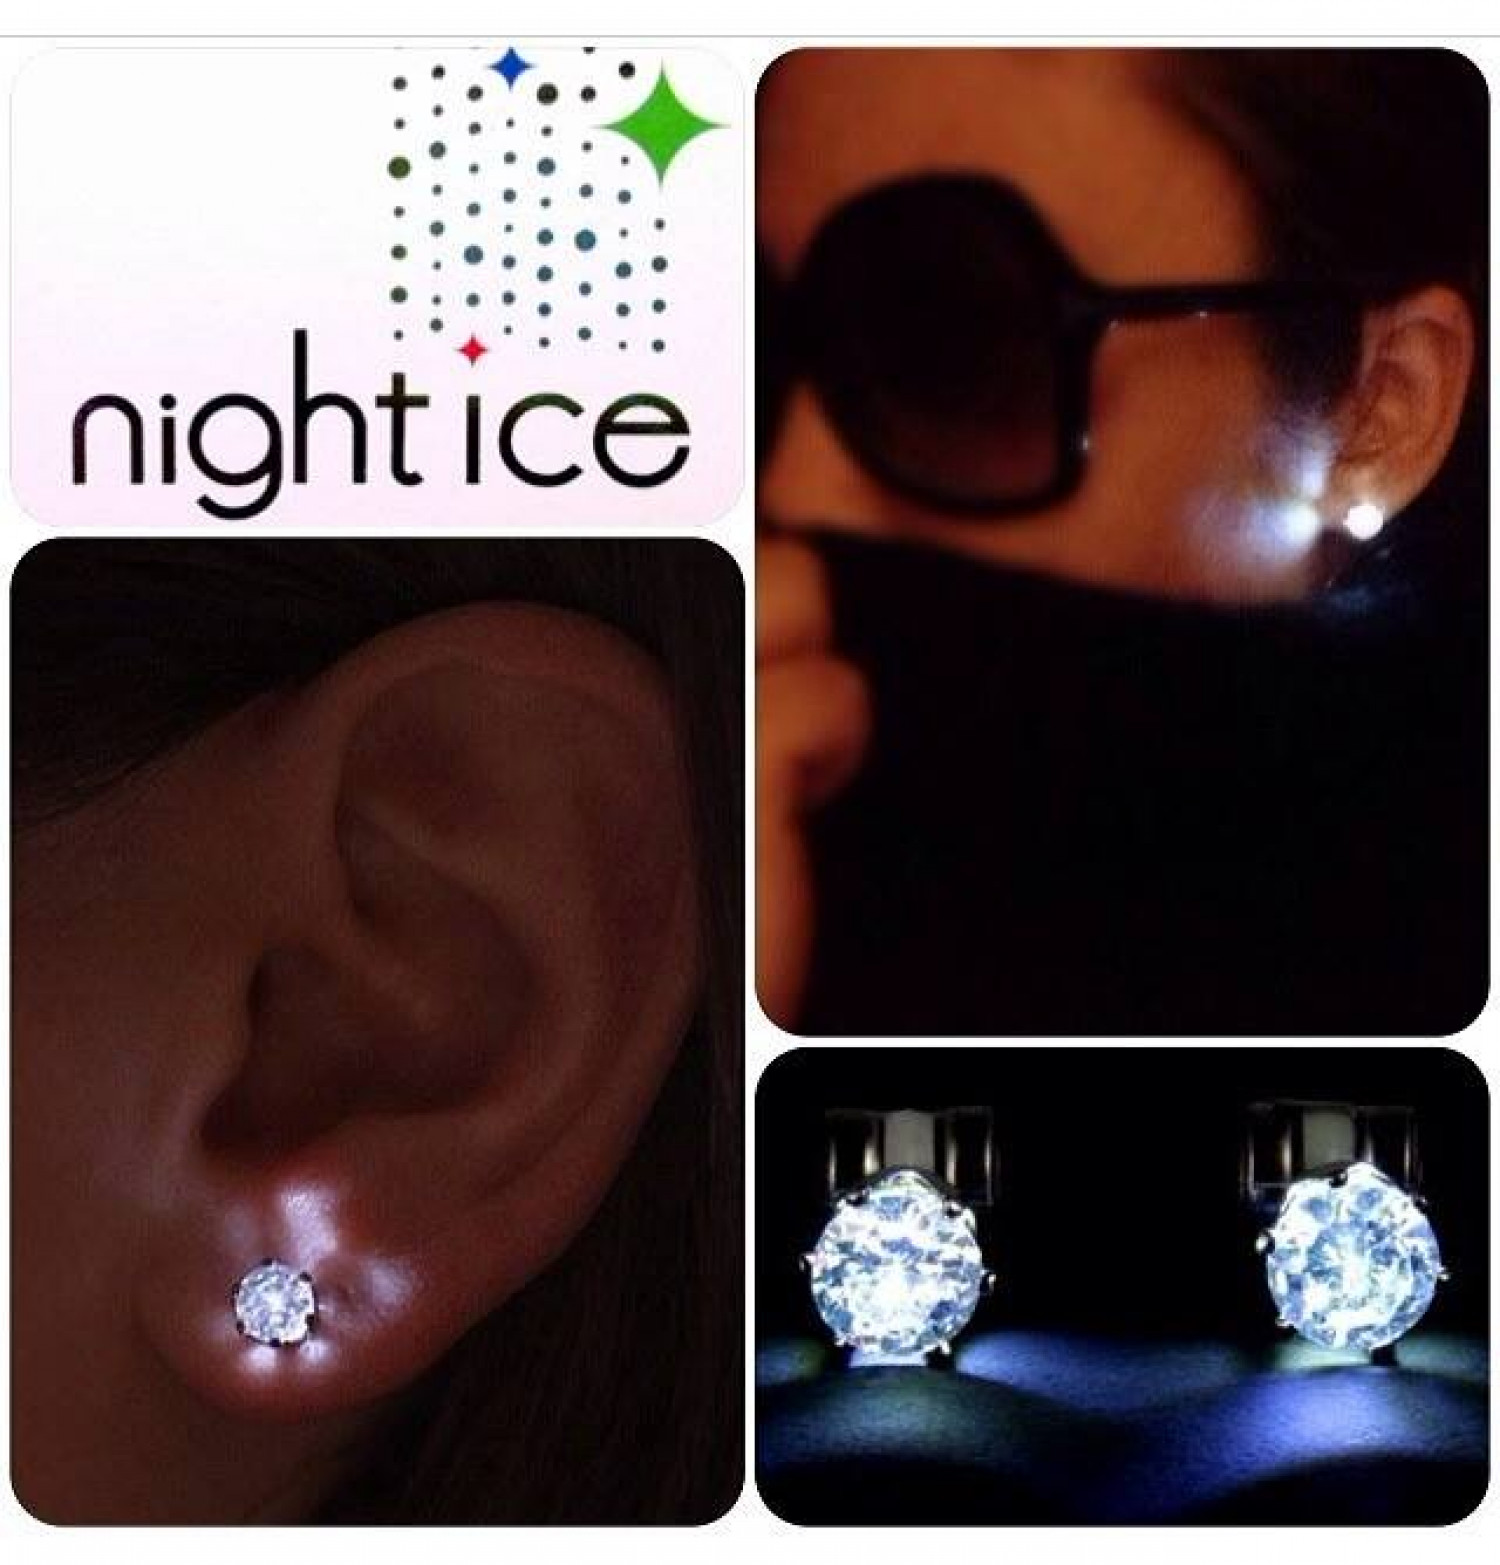 Led Earrings Original Crystal Night Ice Led Earrings 6 Pairs Visual Ly